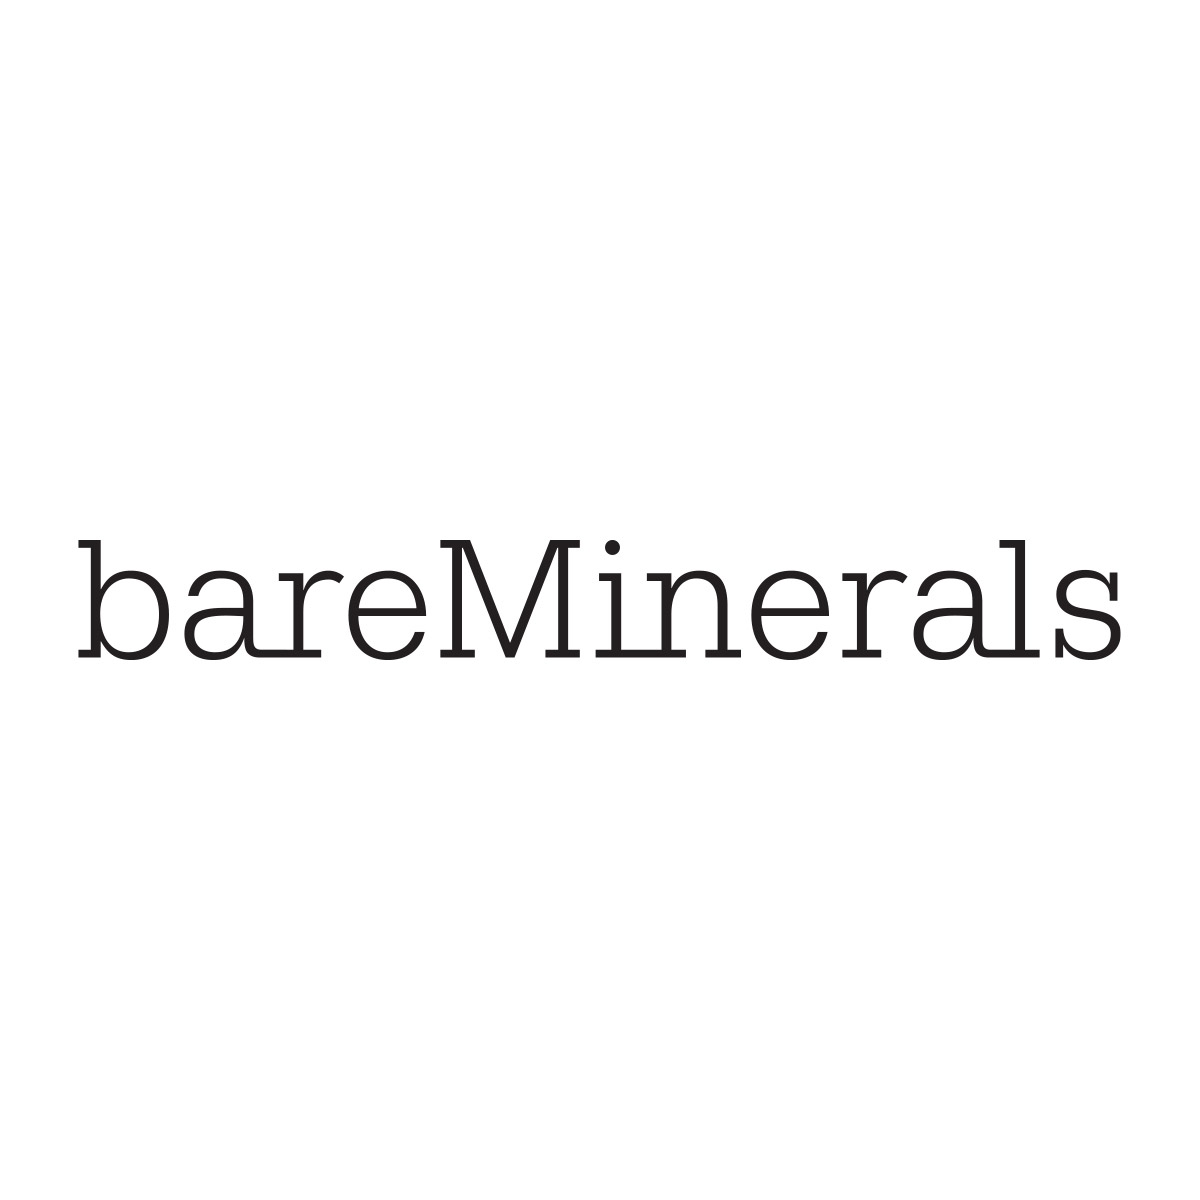 bareMinerals Coupons & Promo Codes